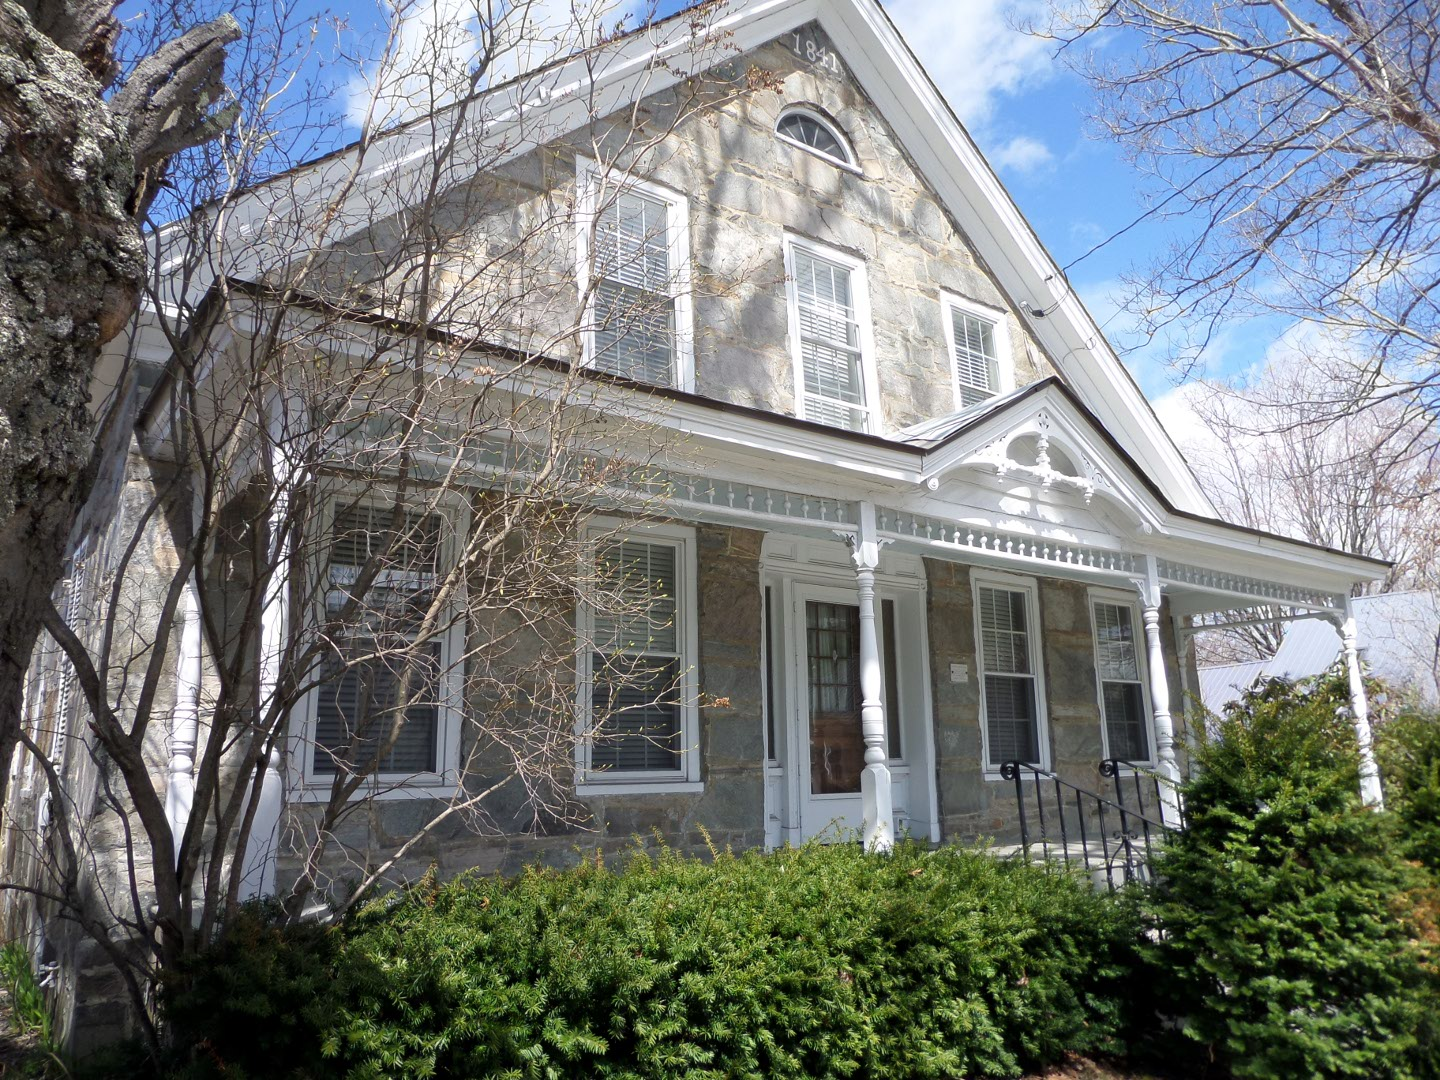 548 Main St, Chester, Vermont 05143